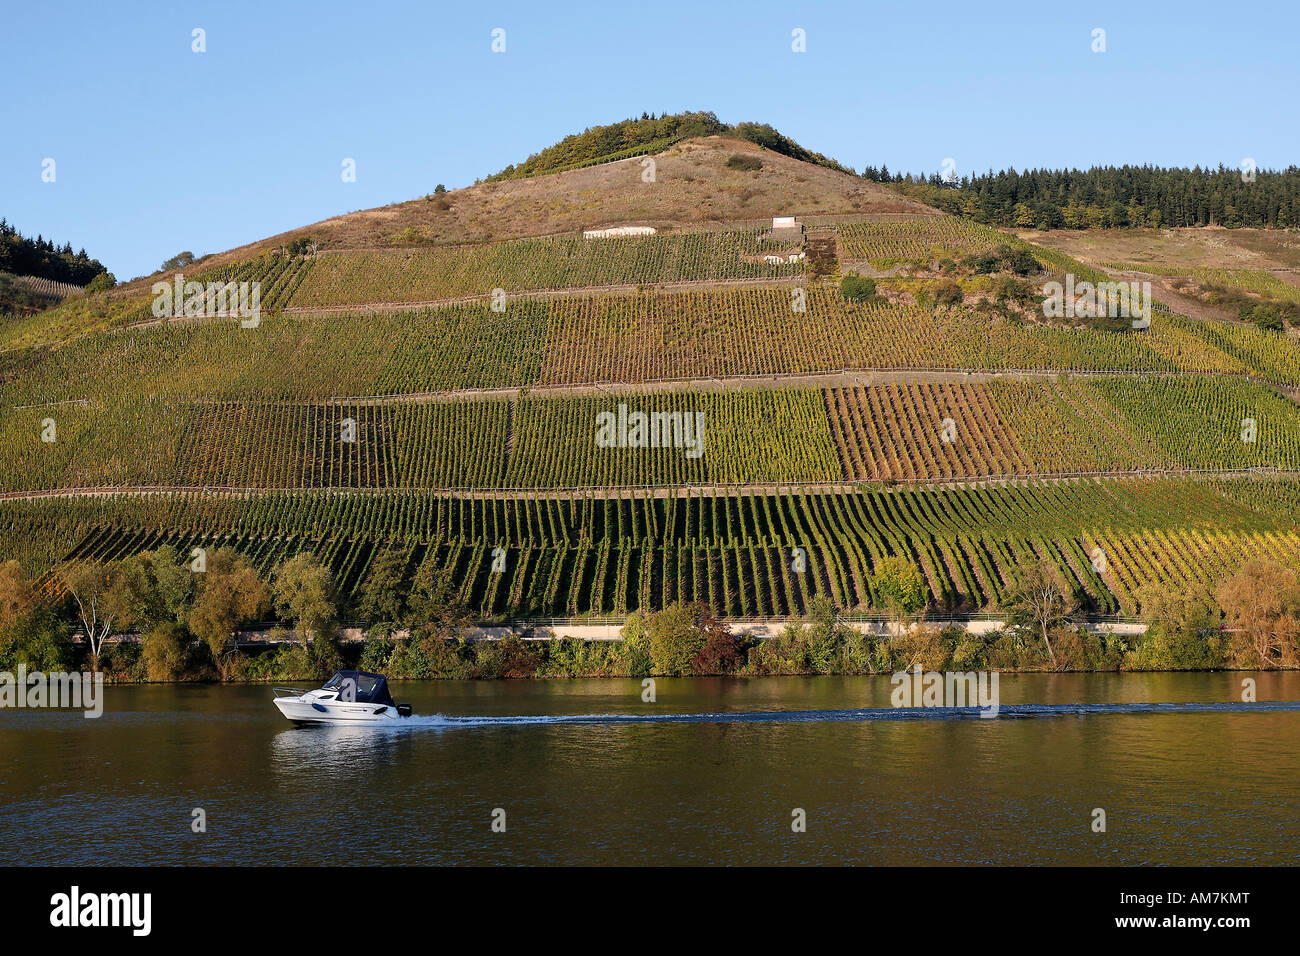 Small motorboat sails in front of autumn vineyards at the Mosel near Longuich, Trier, Rhineland-Palatinate, Germany Stock Photo